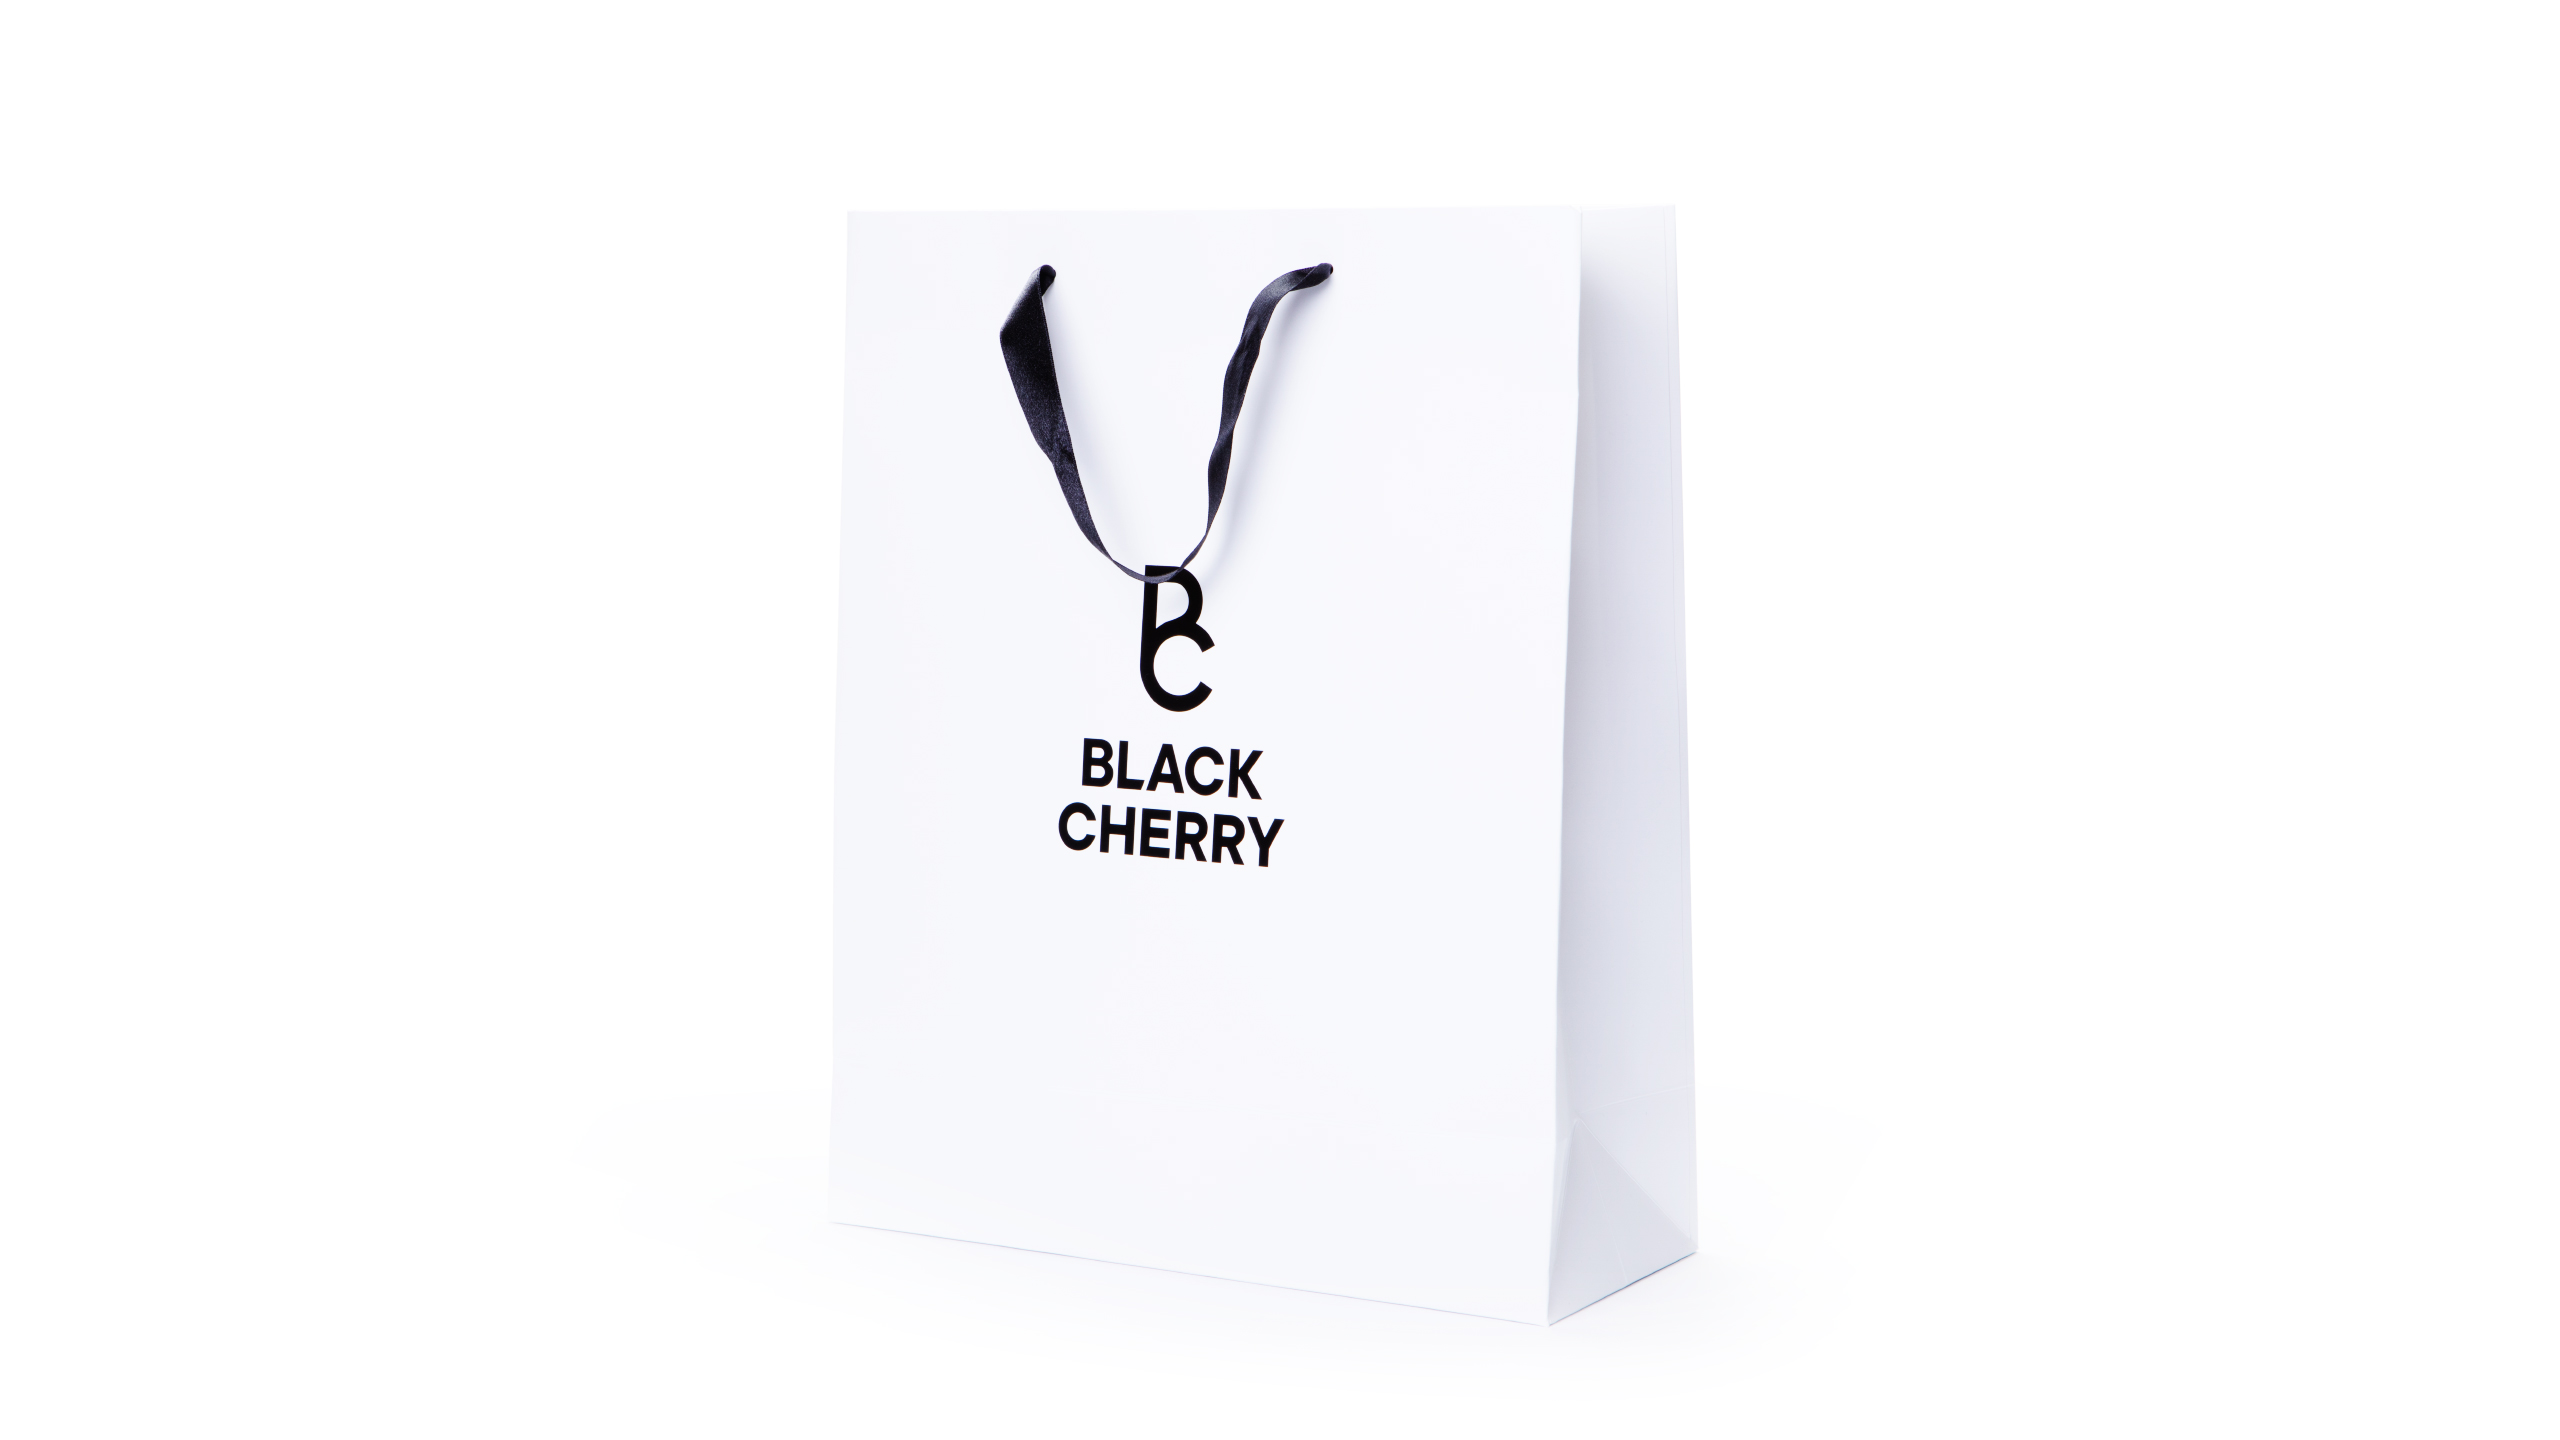 Black Cherry Packaging